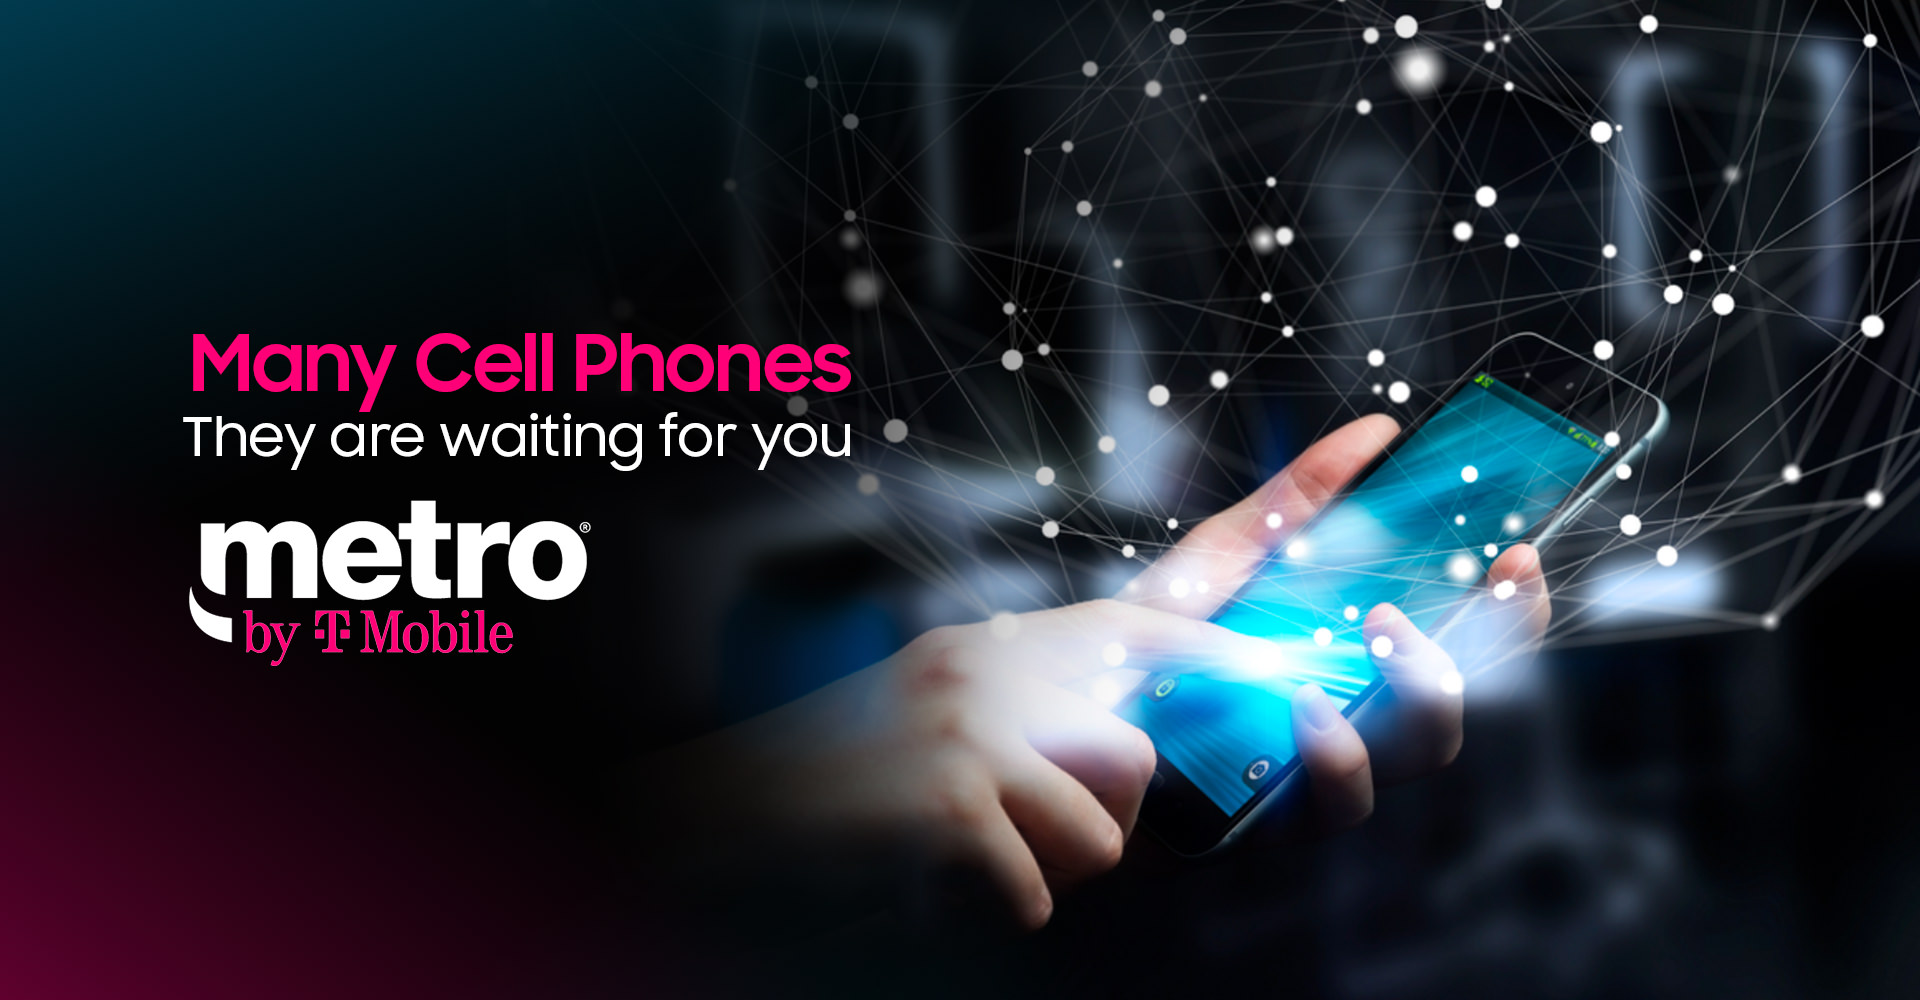 Brazcom Wireless - Many Cell Phones By T-Mobile